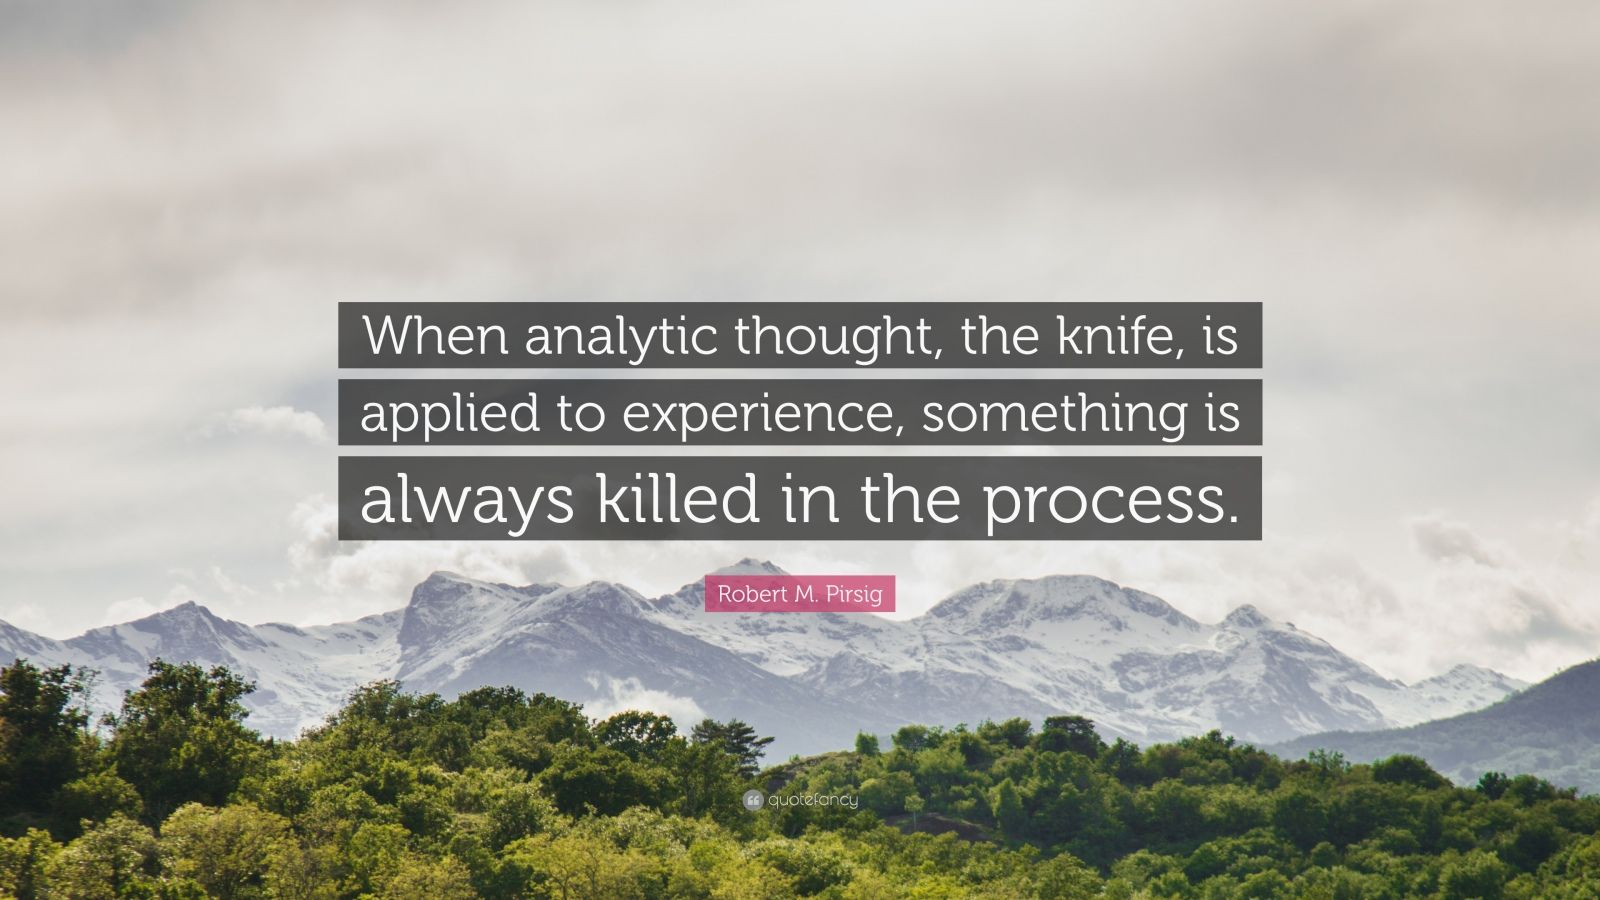 """Robert M. Pirsig Quote: """"When analytic thought, the knife, is applied to experience, something is always killed in the process."""""""